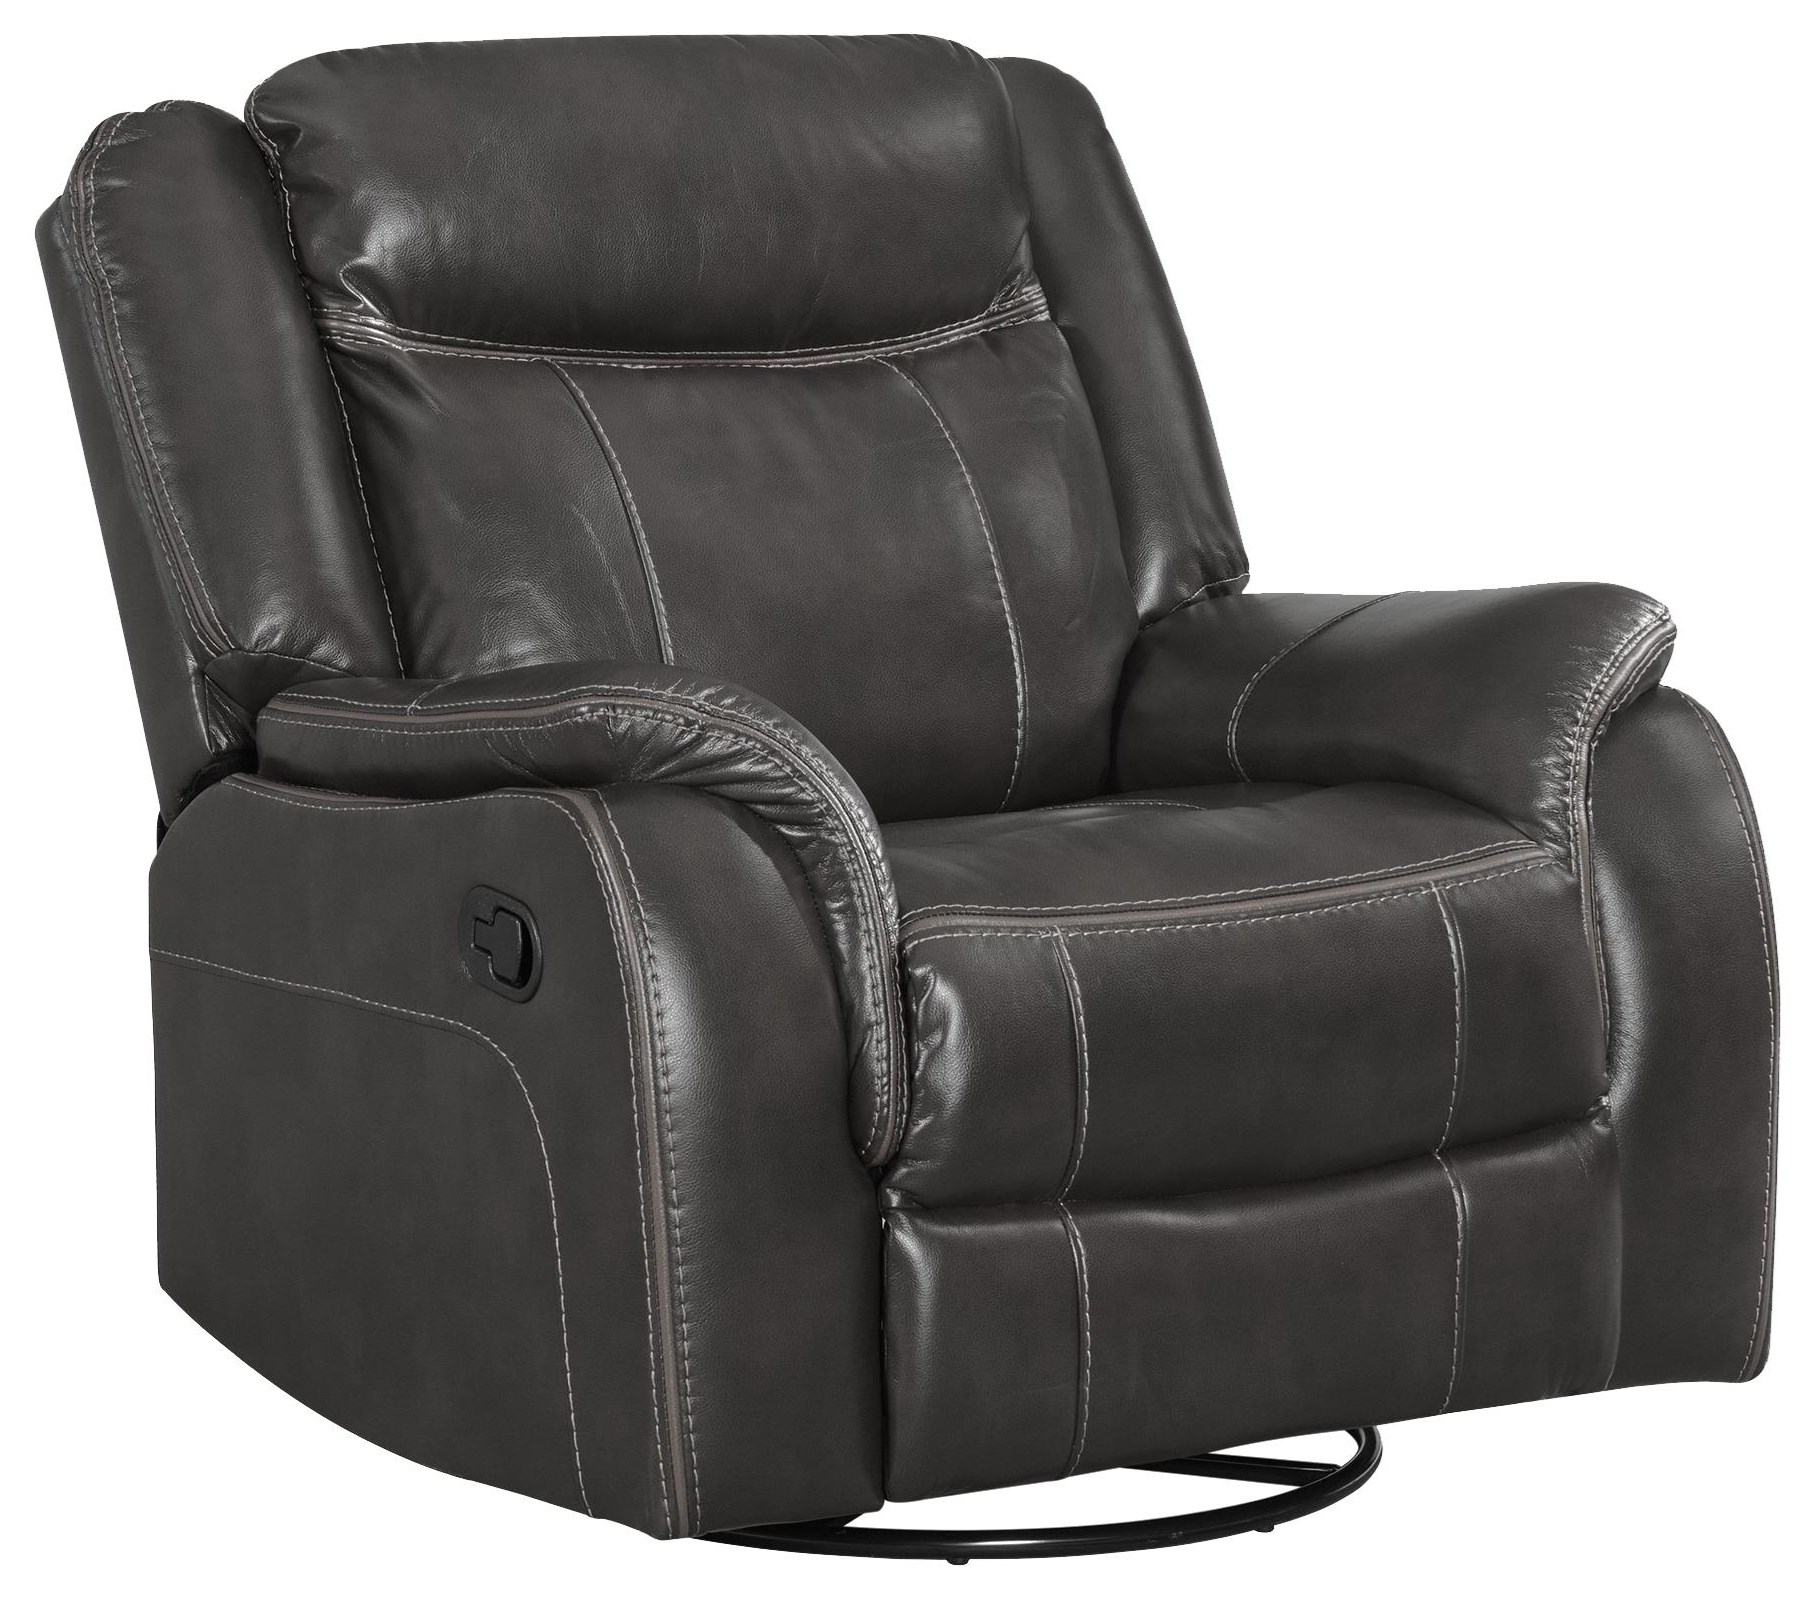 Avalon Motion Swivel Glider Recliner by Elements International at Smart Buy Furniture